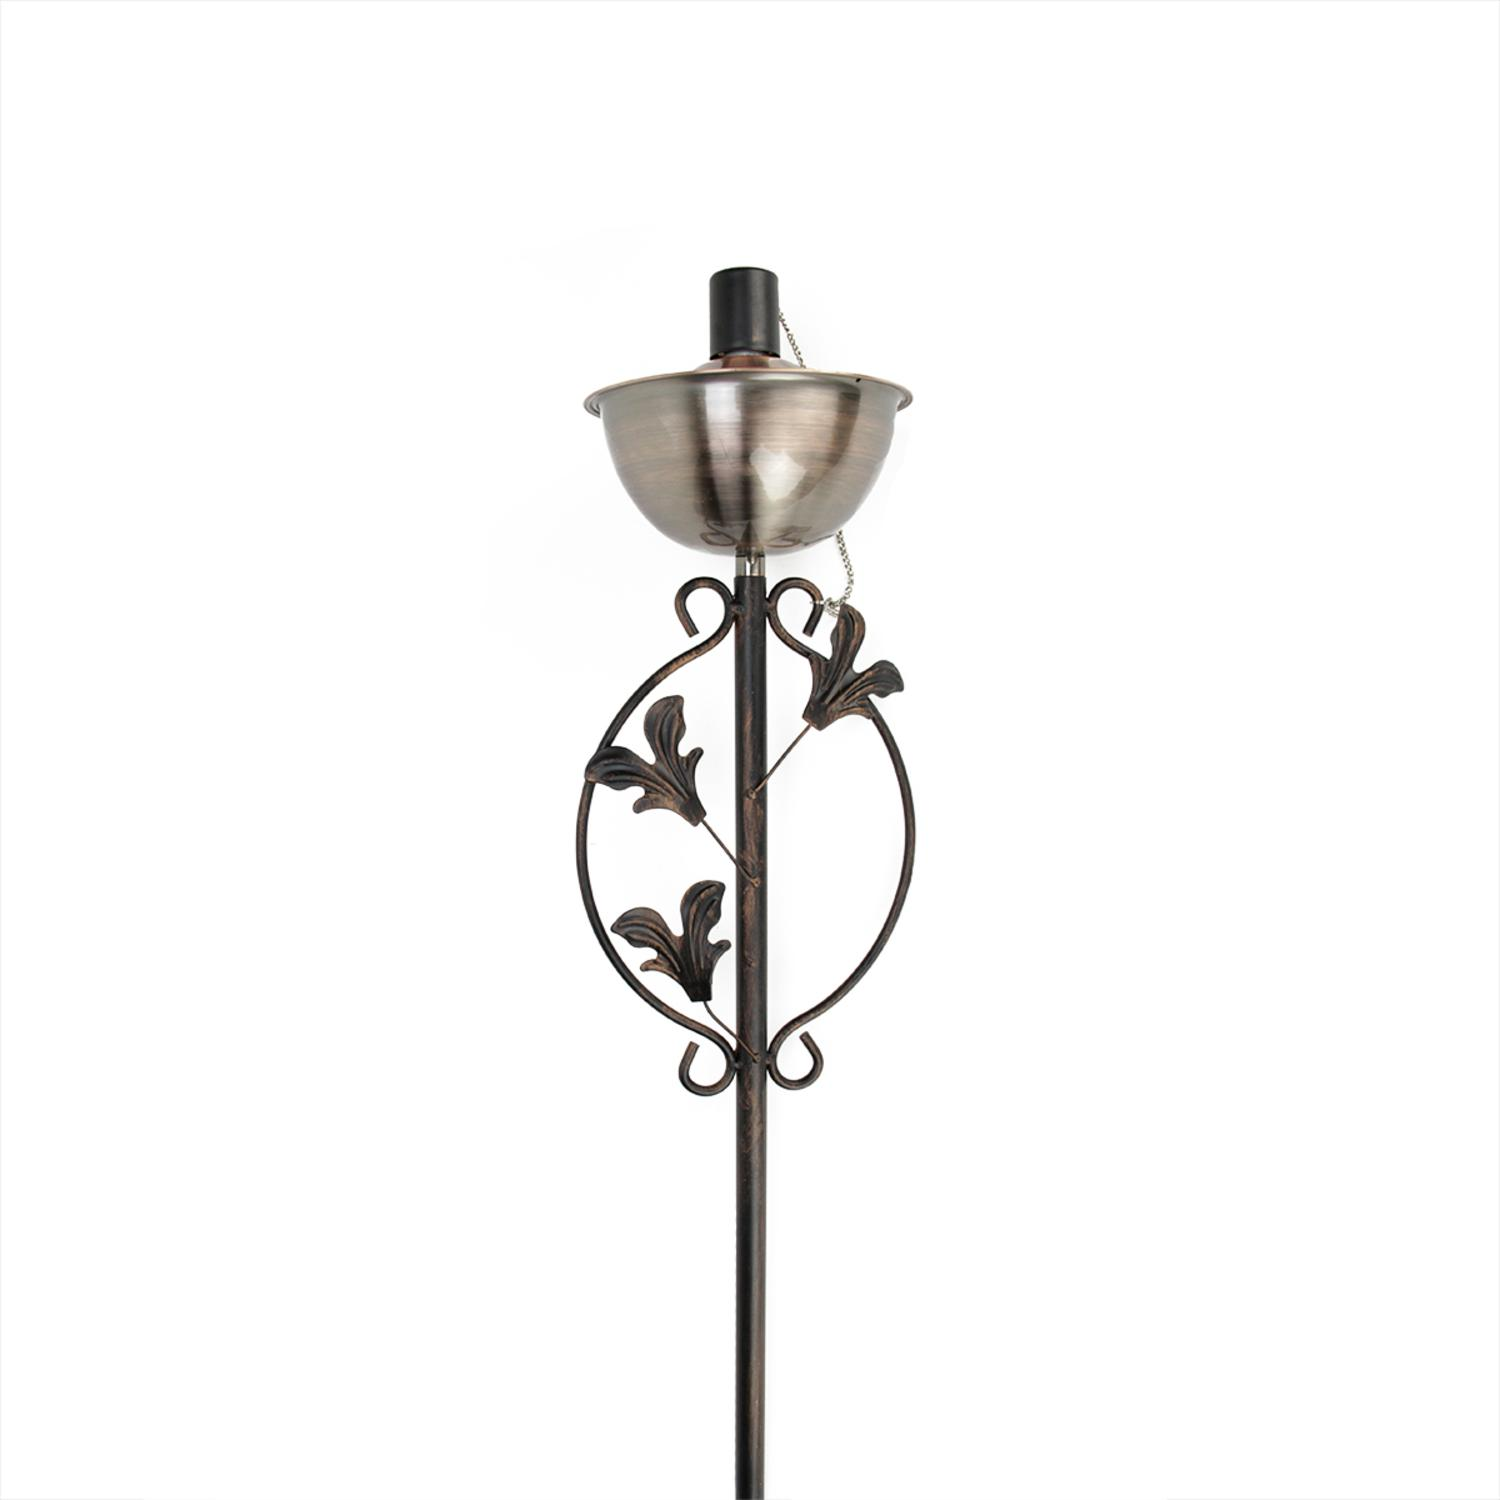 "64.5"" Brushed Copper Floral Motif Garden Oil Lamp Outdoor Patio Torch by DAK"